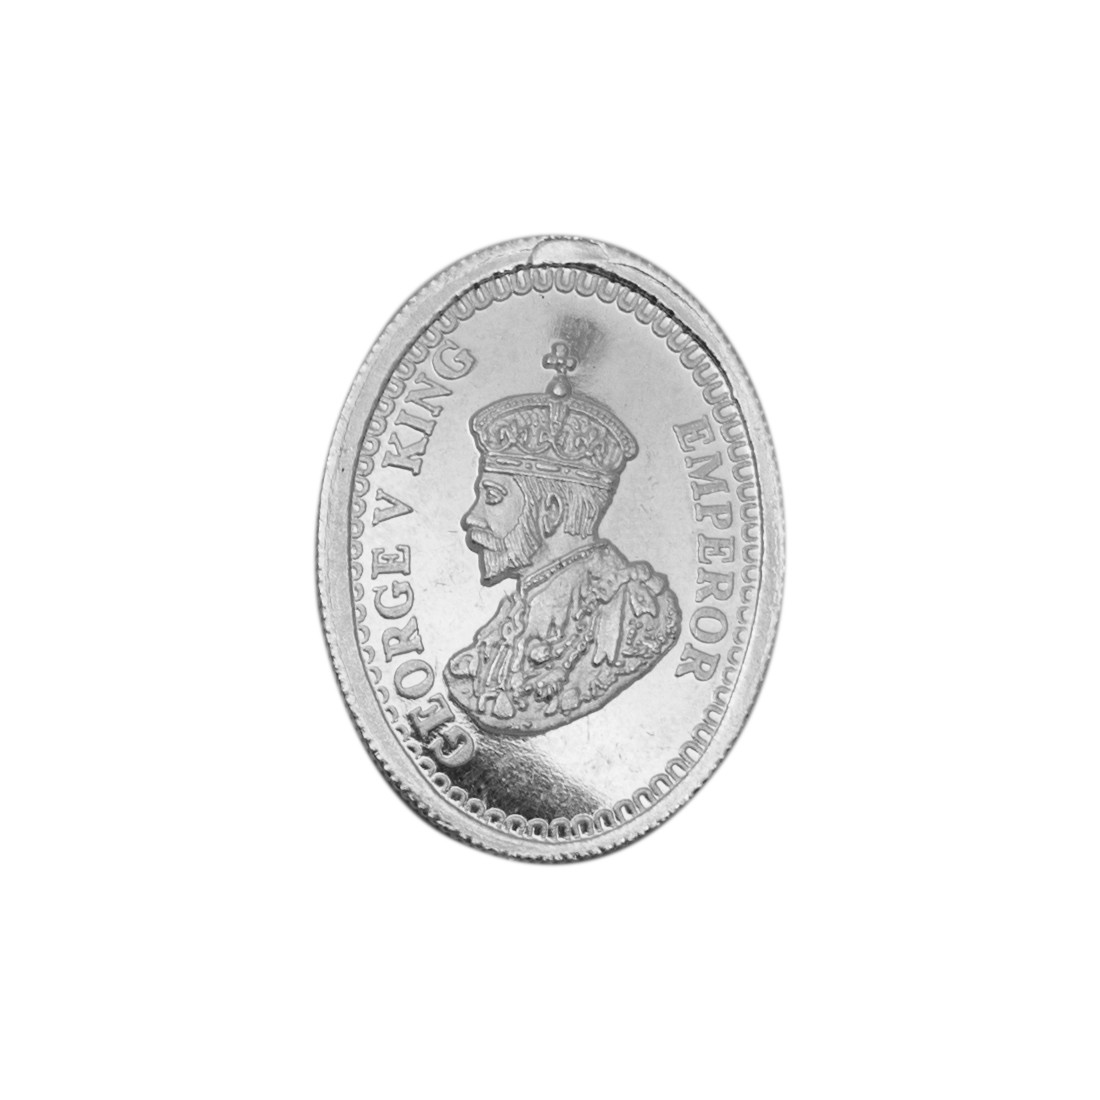 Buy George V King Oval Shape Silver Coin Of 10 Gram In 999